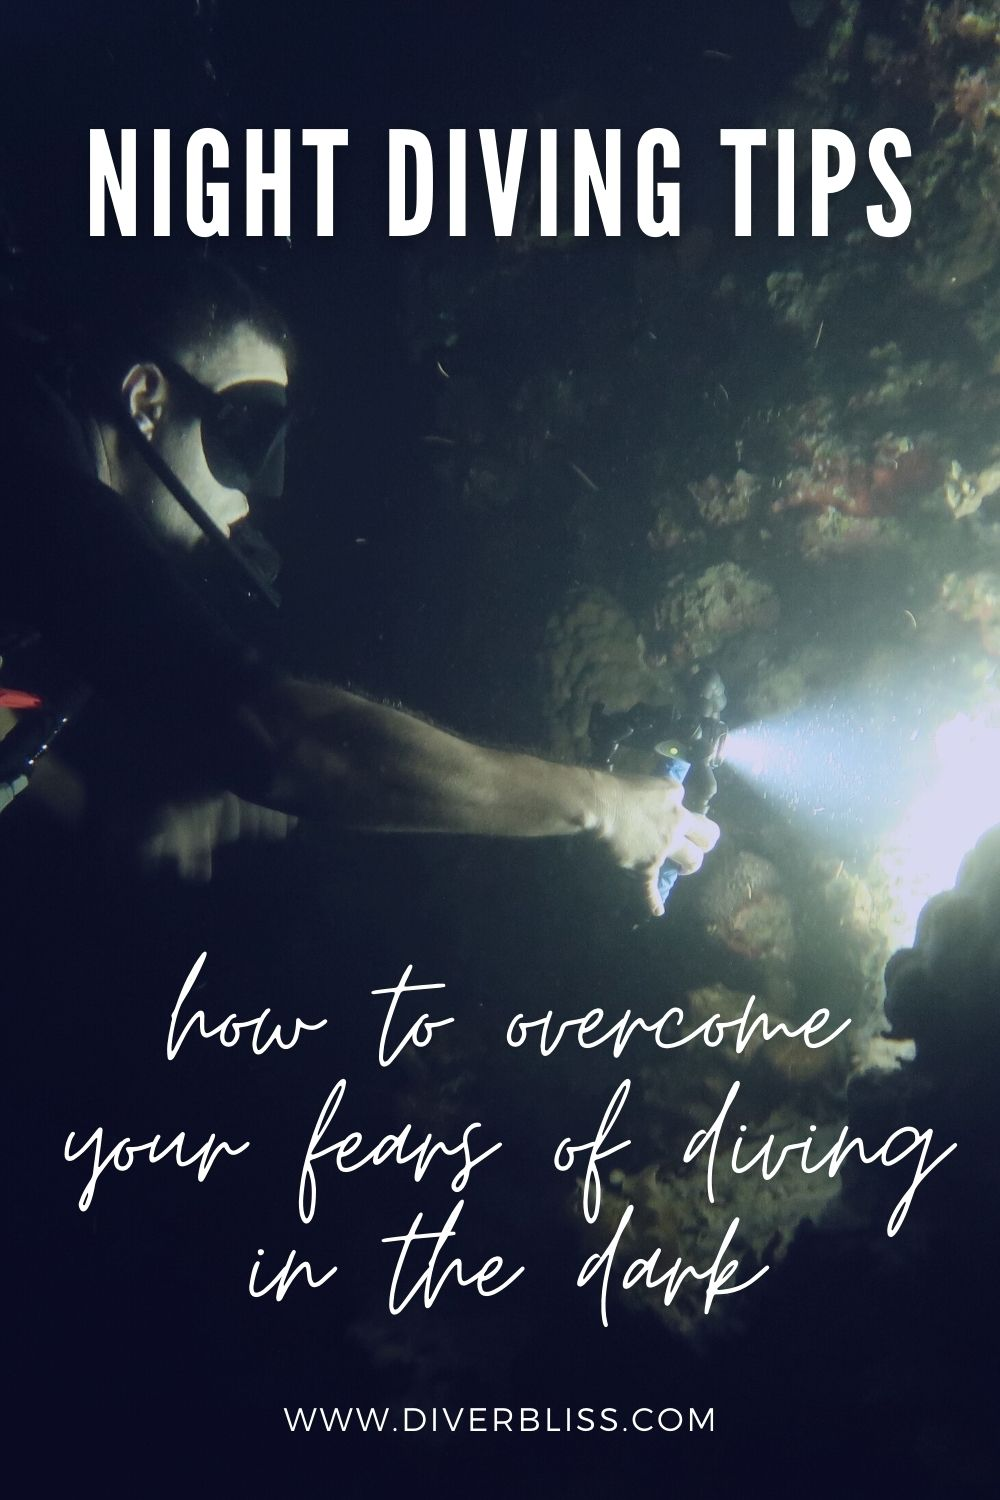 Night diving tips on how to overcome your fears of diving in the dark